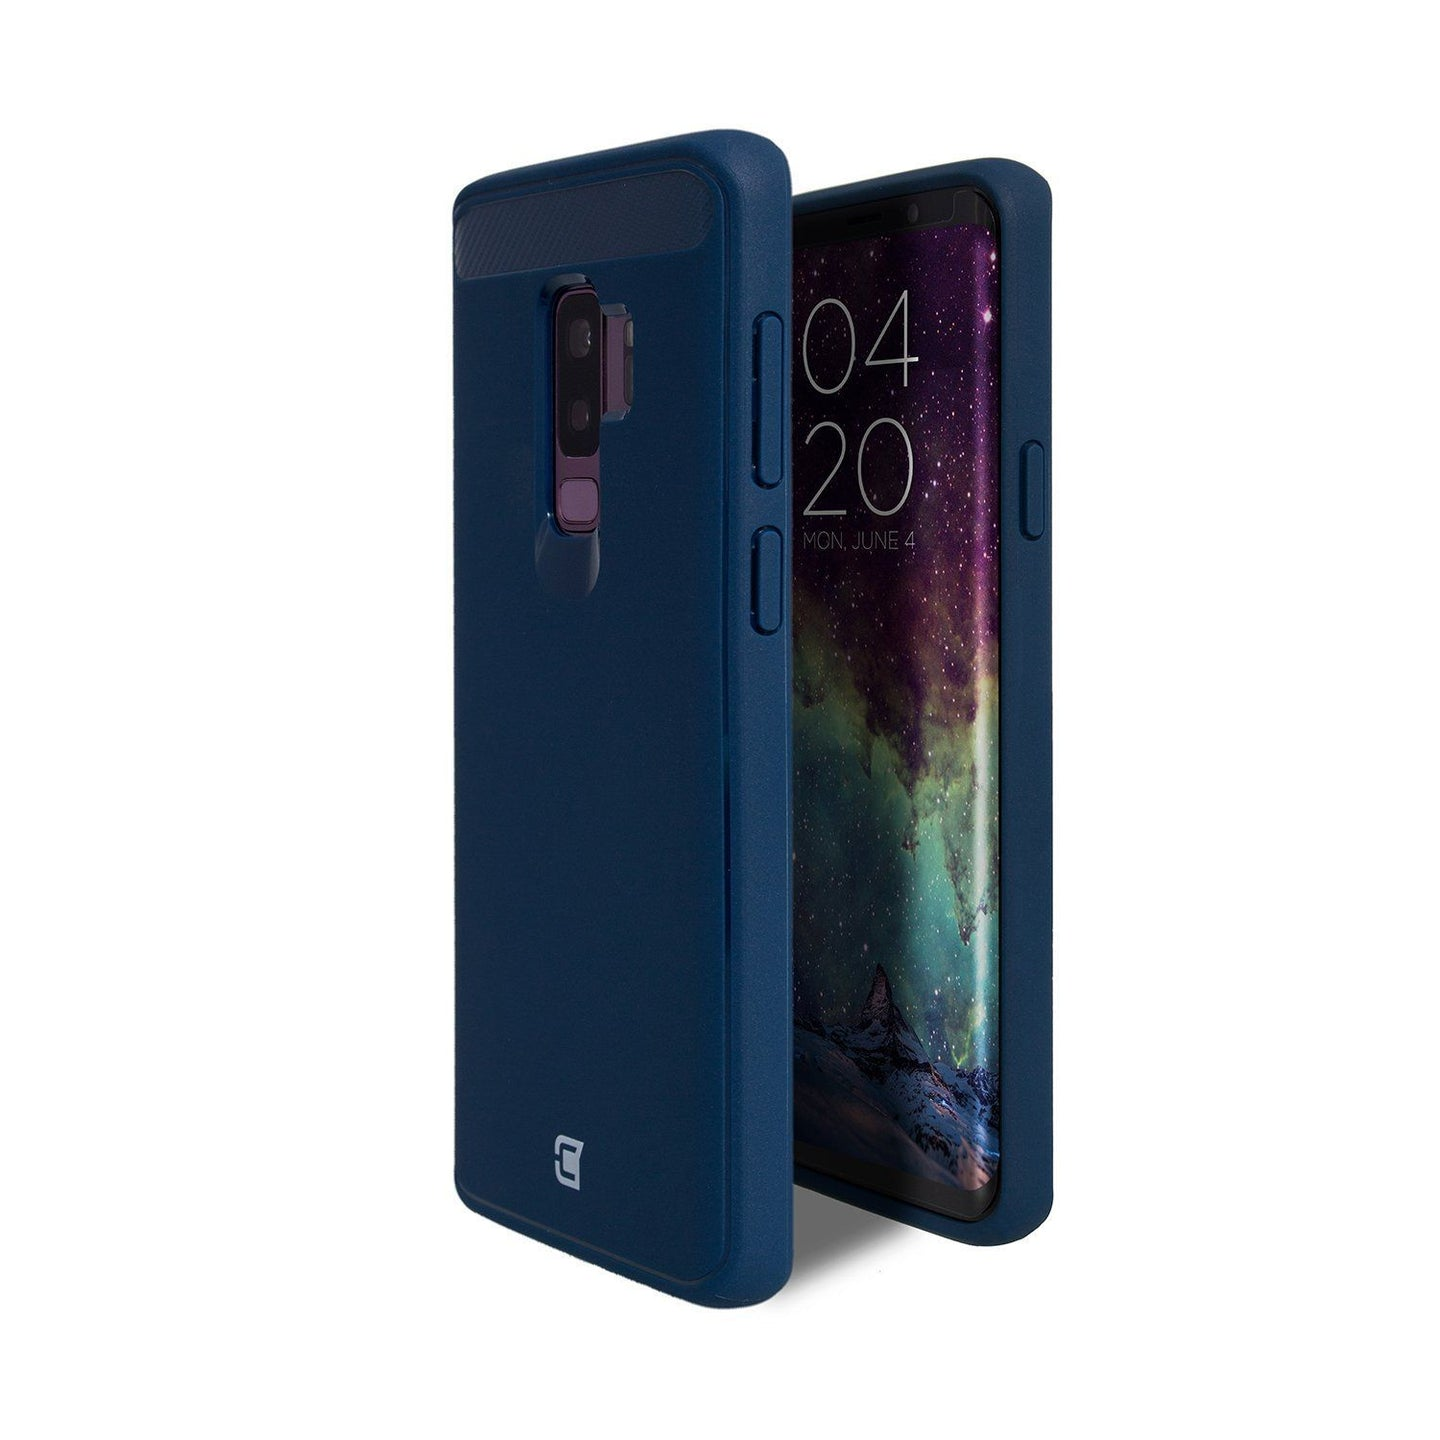 Samsung Galaxy S9 - Skin Shield Case - Navy